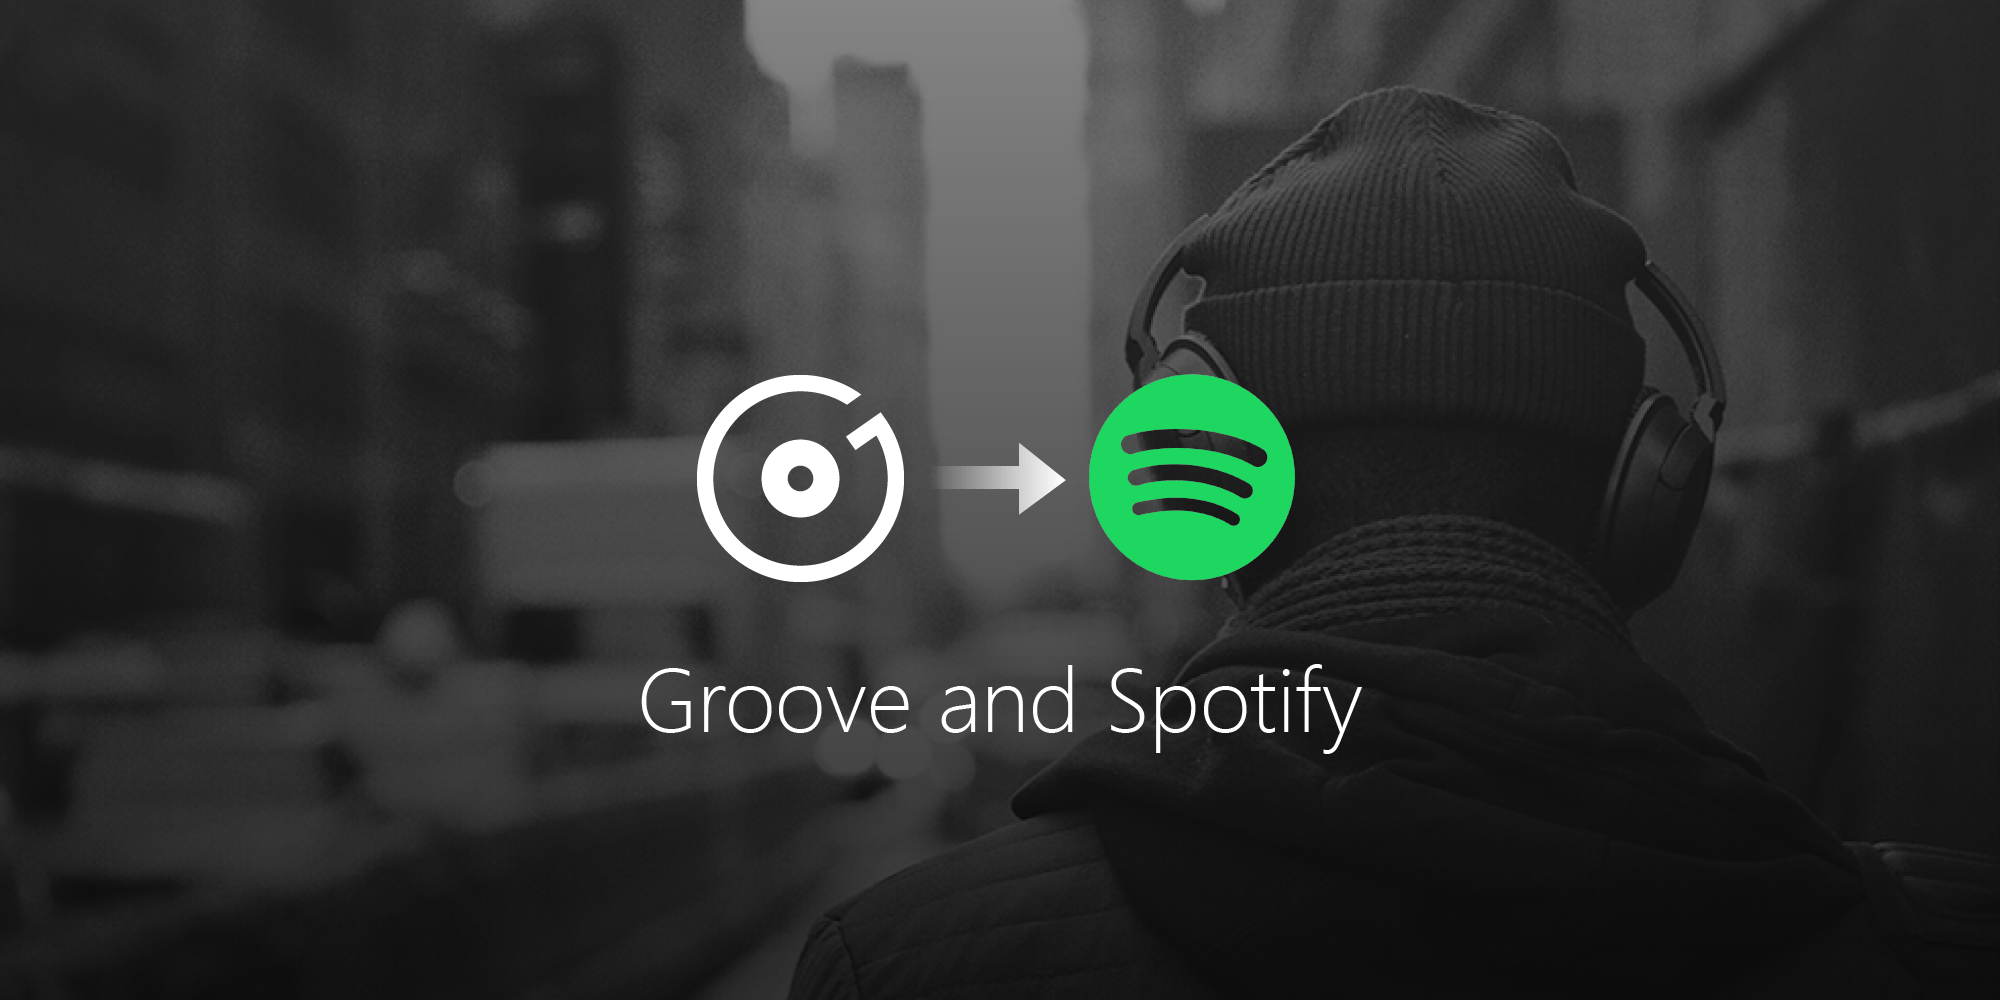 Microsoft kills of Groove Music streaming service, aligns with Spotify